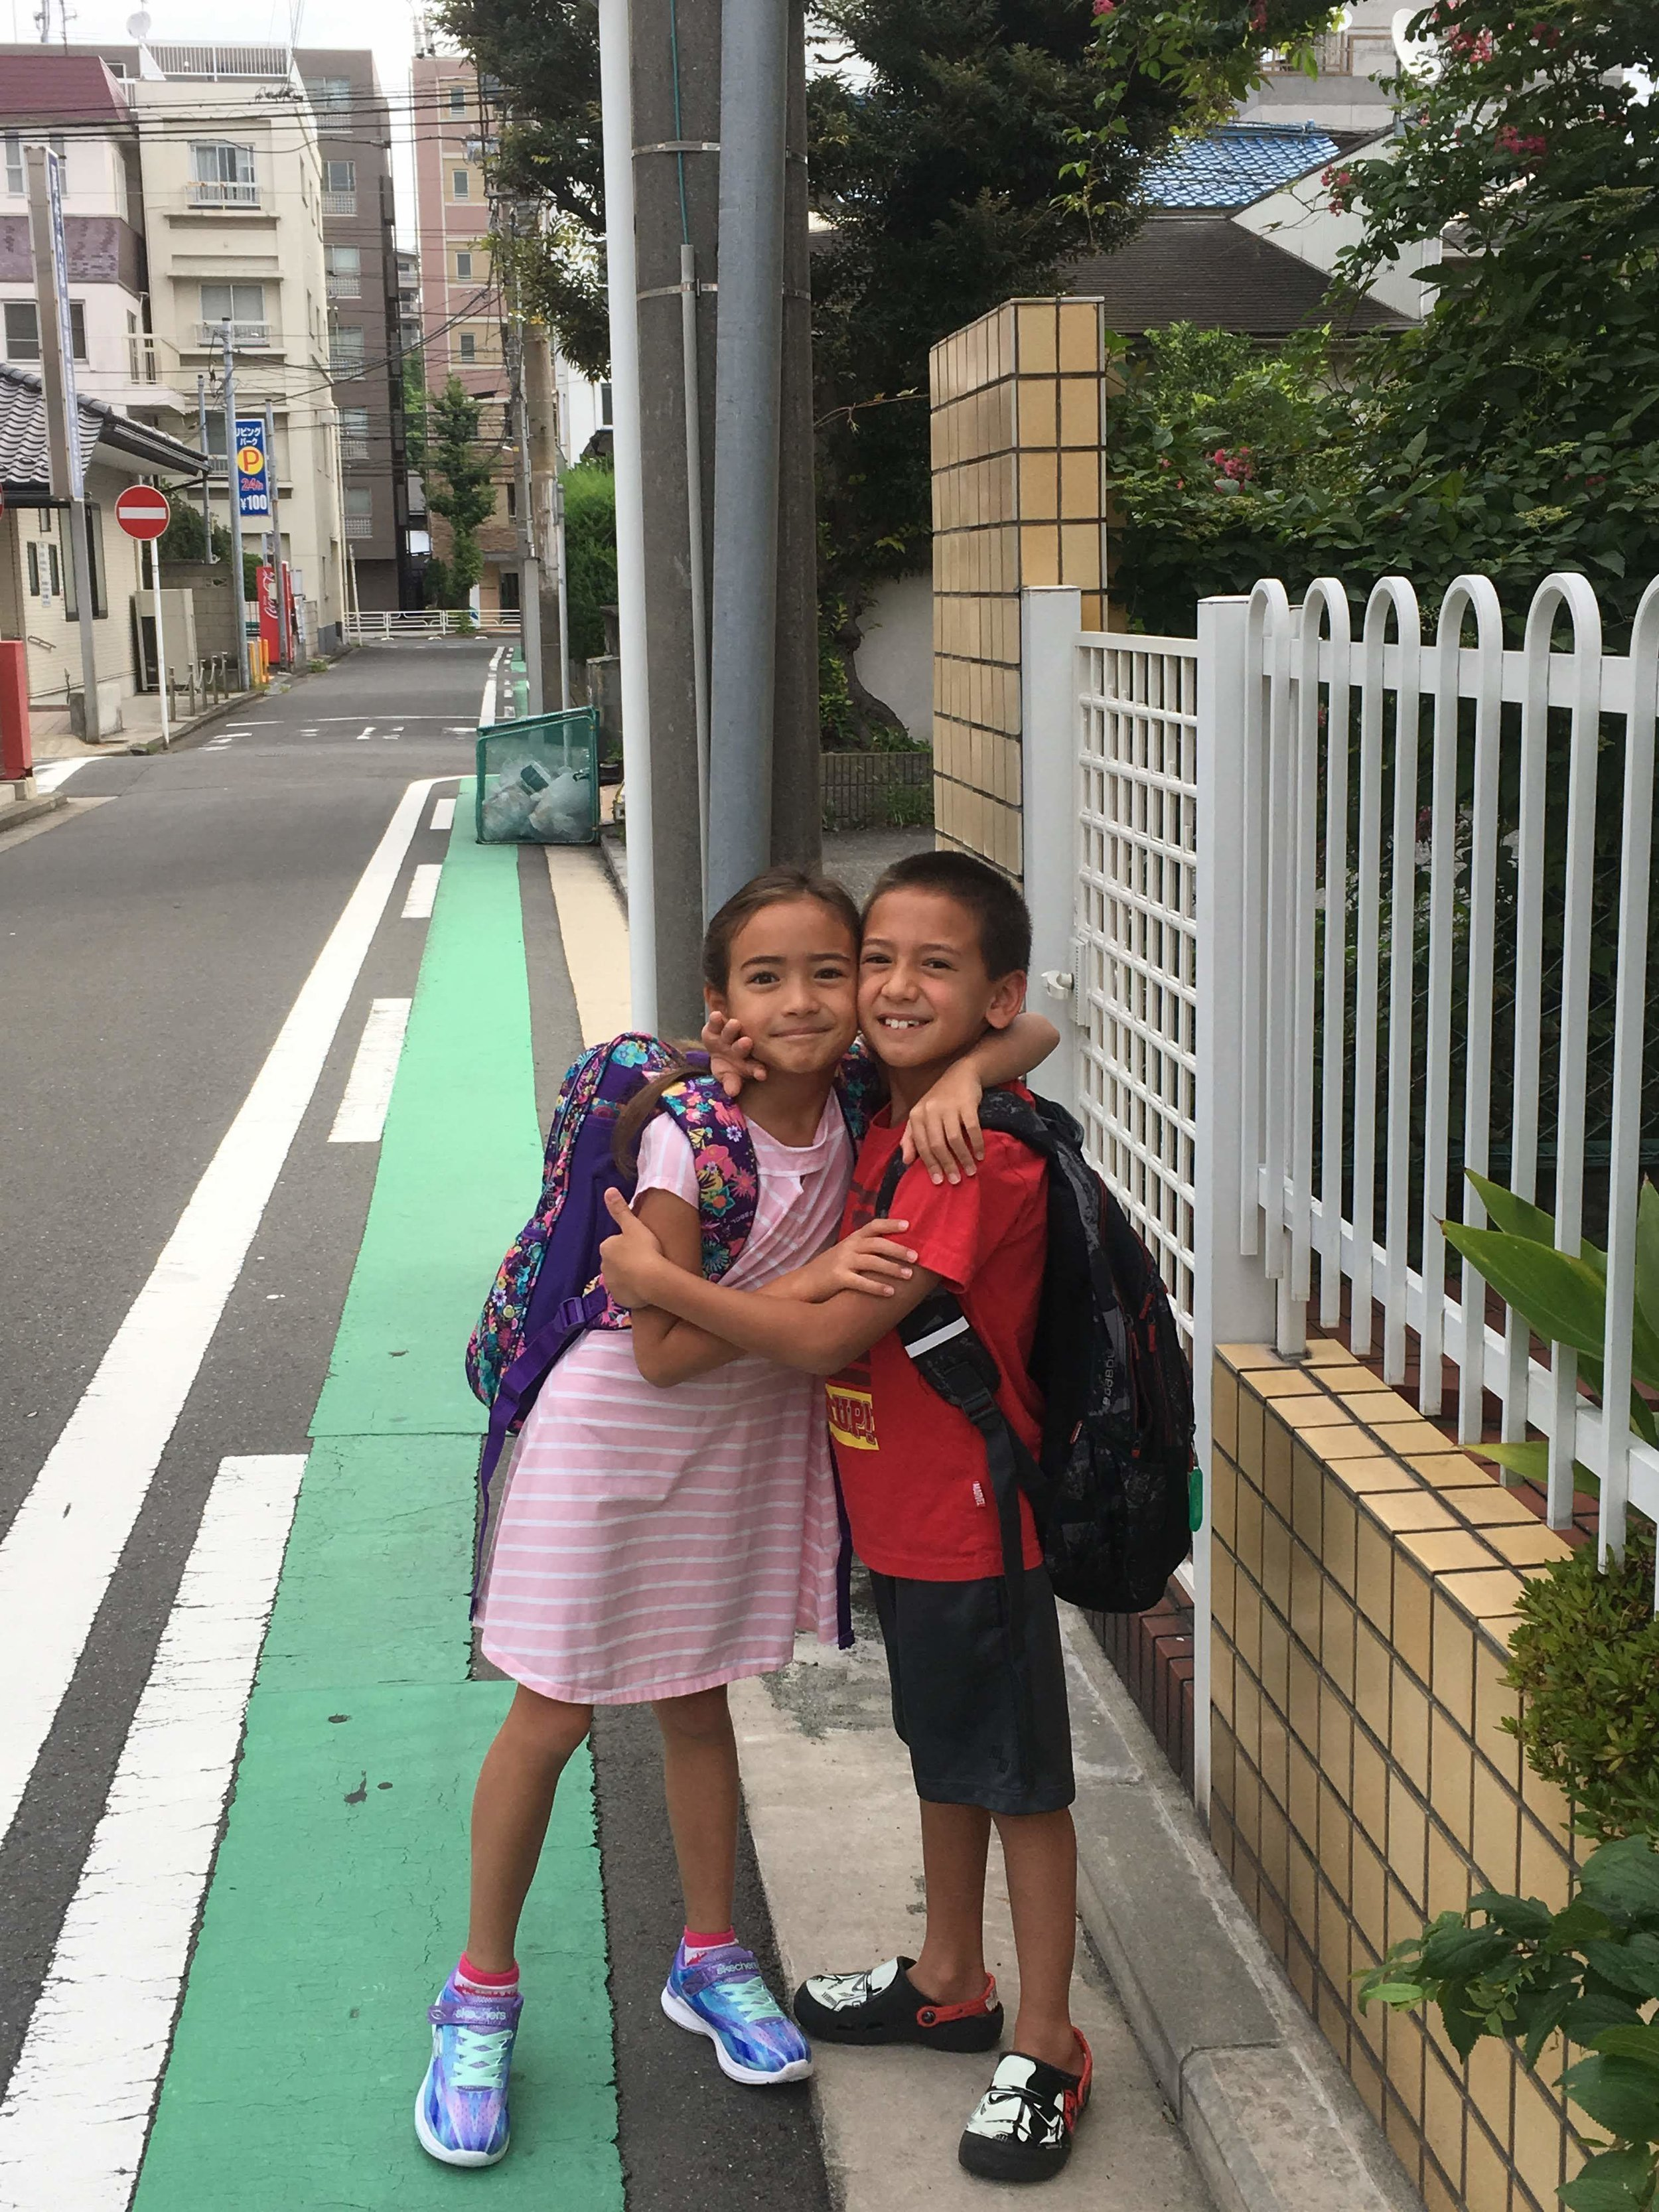 The kids' first day of school